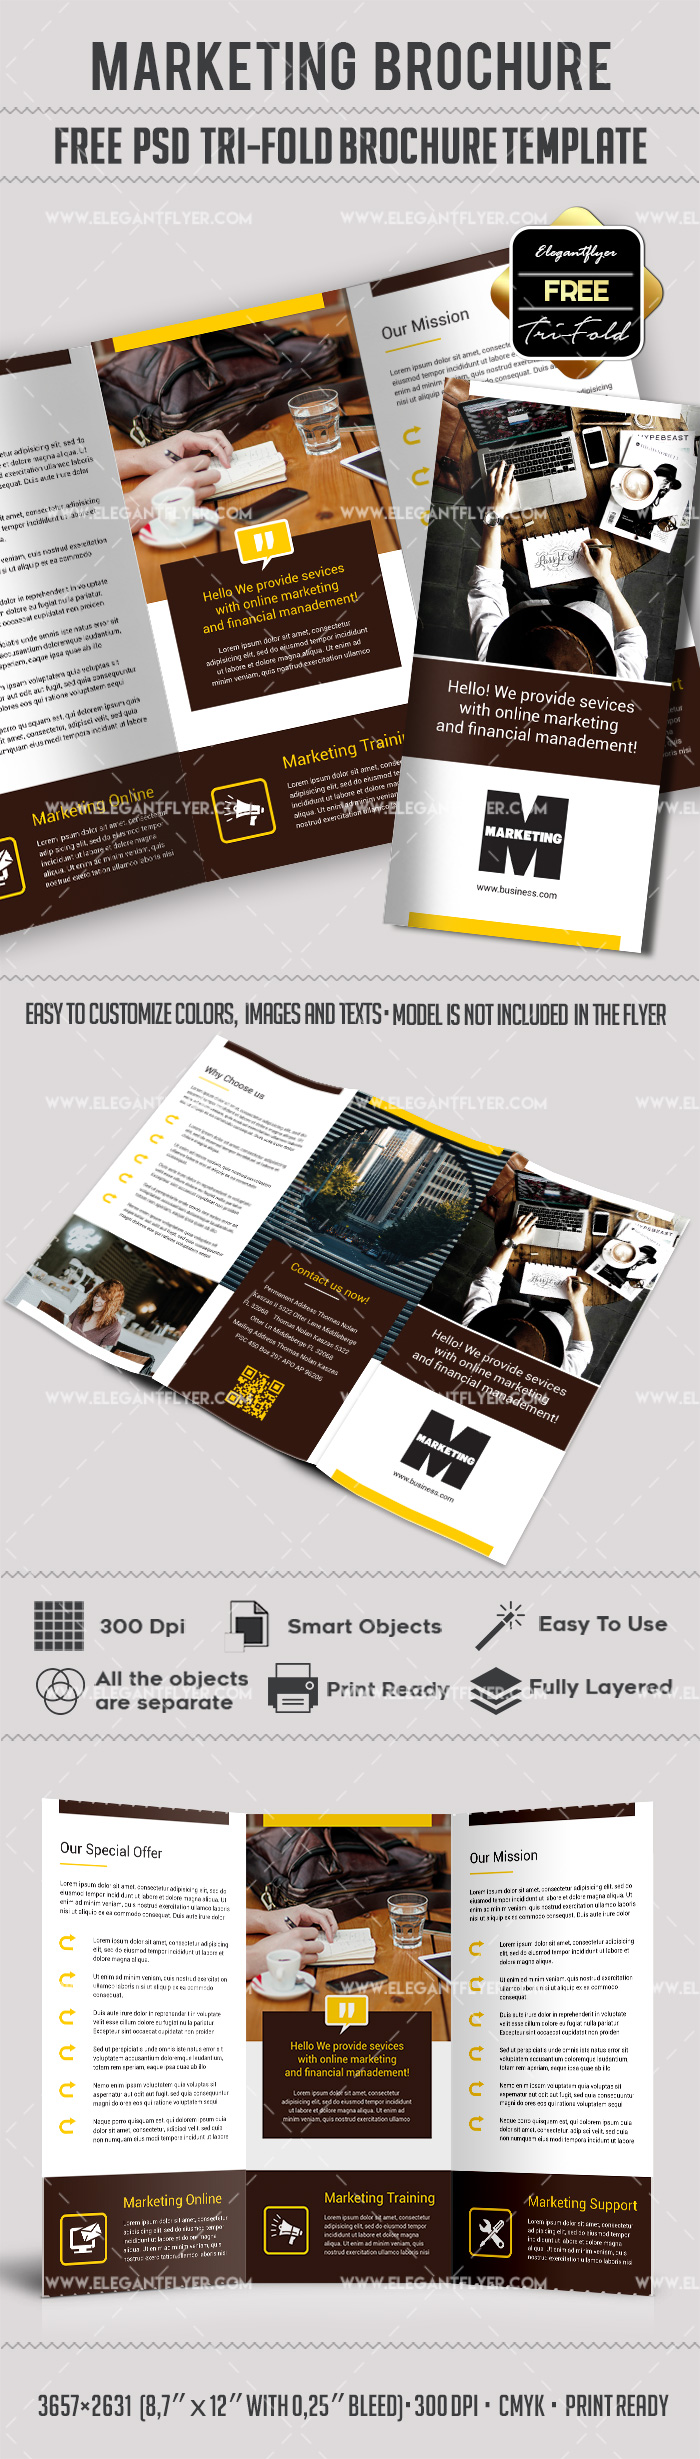 printable brochure templates - marketing free tri fold psd brochure template by